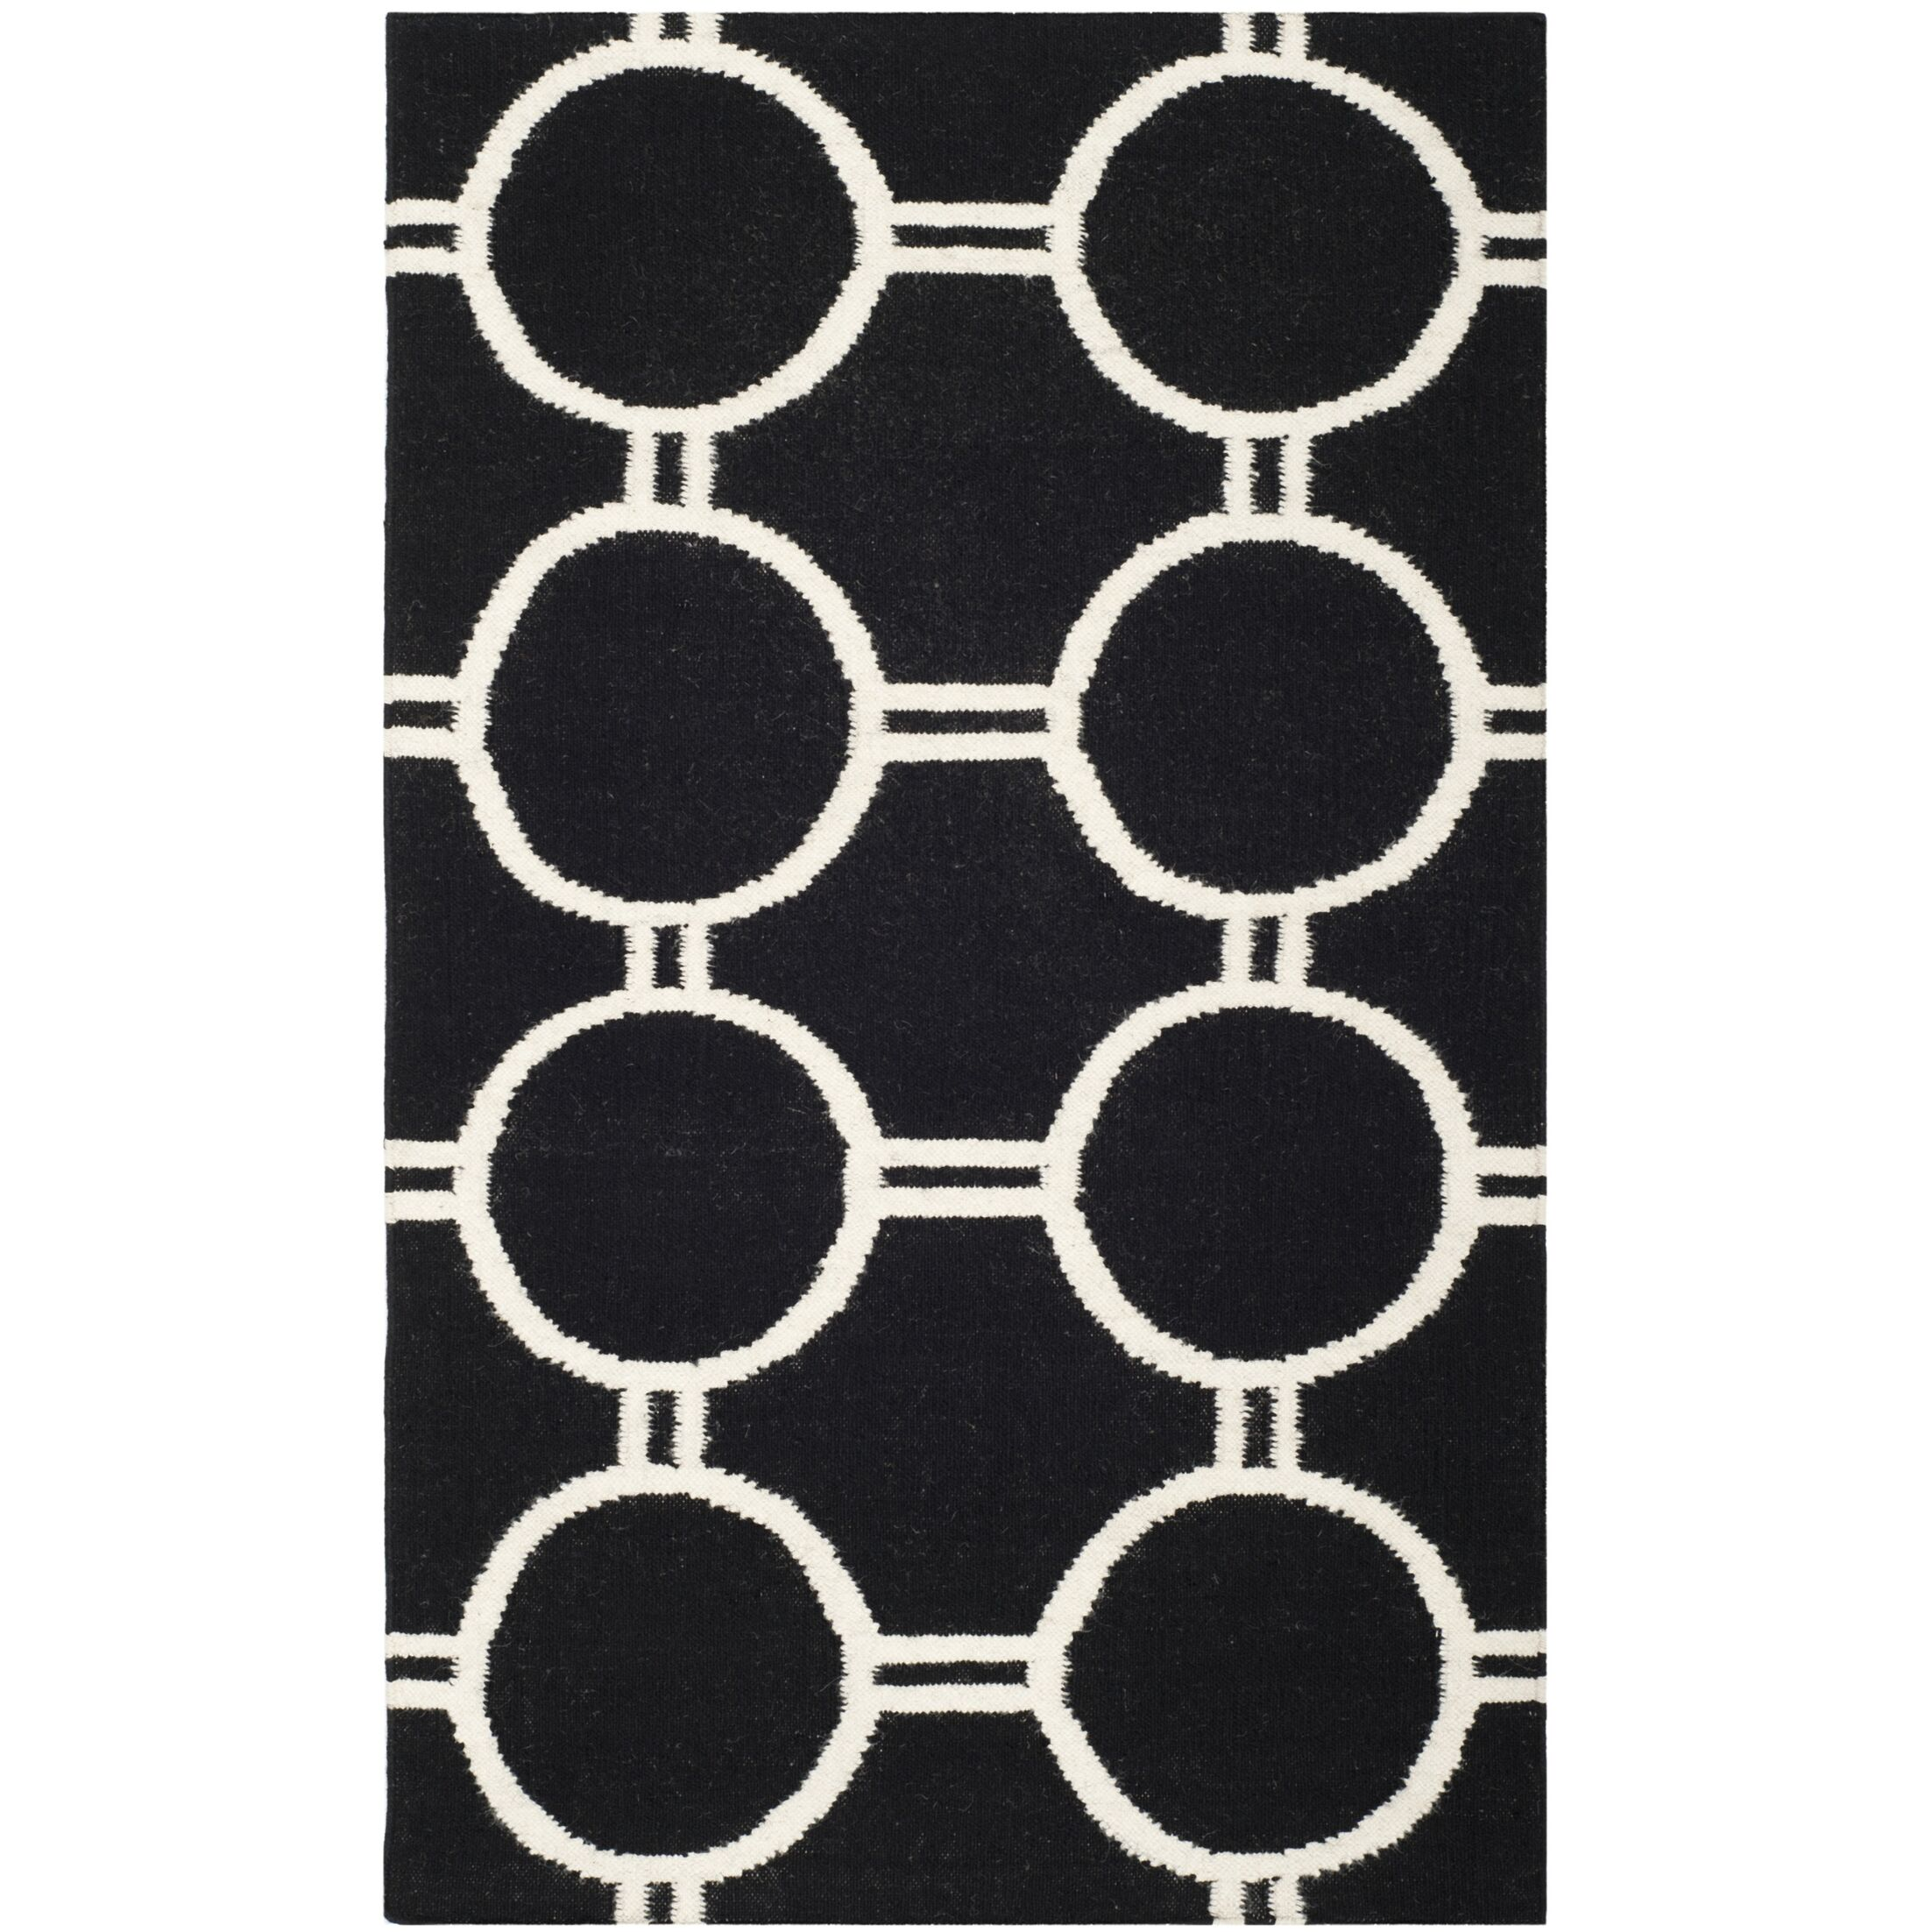 Dhurries Black/Ivory Area Rug Rug Size: Rectangle 4' x 6'